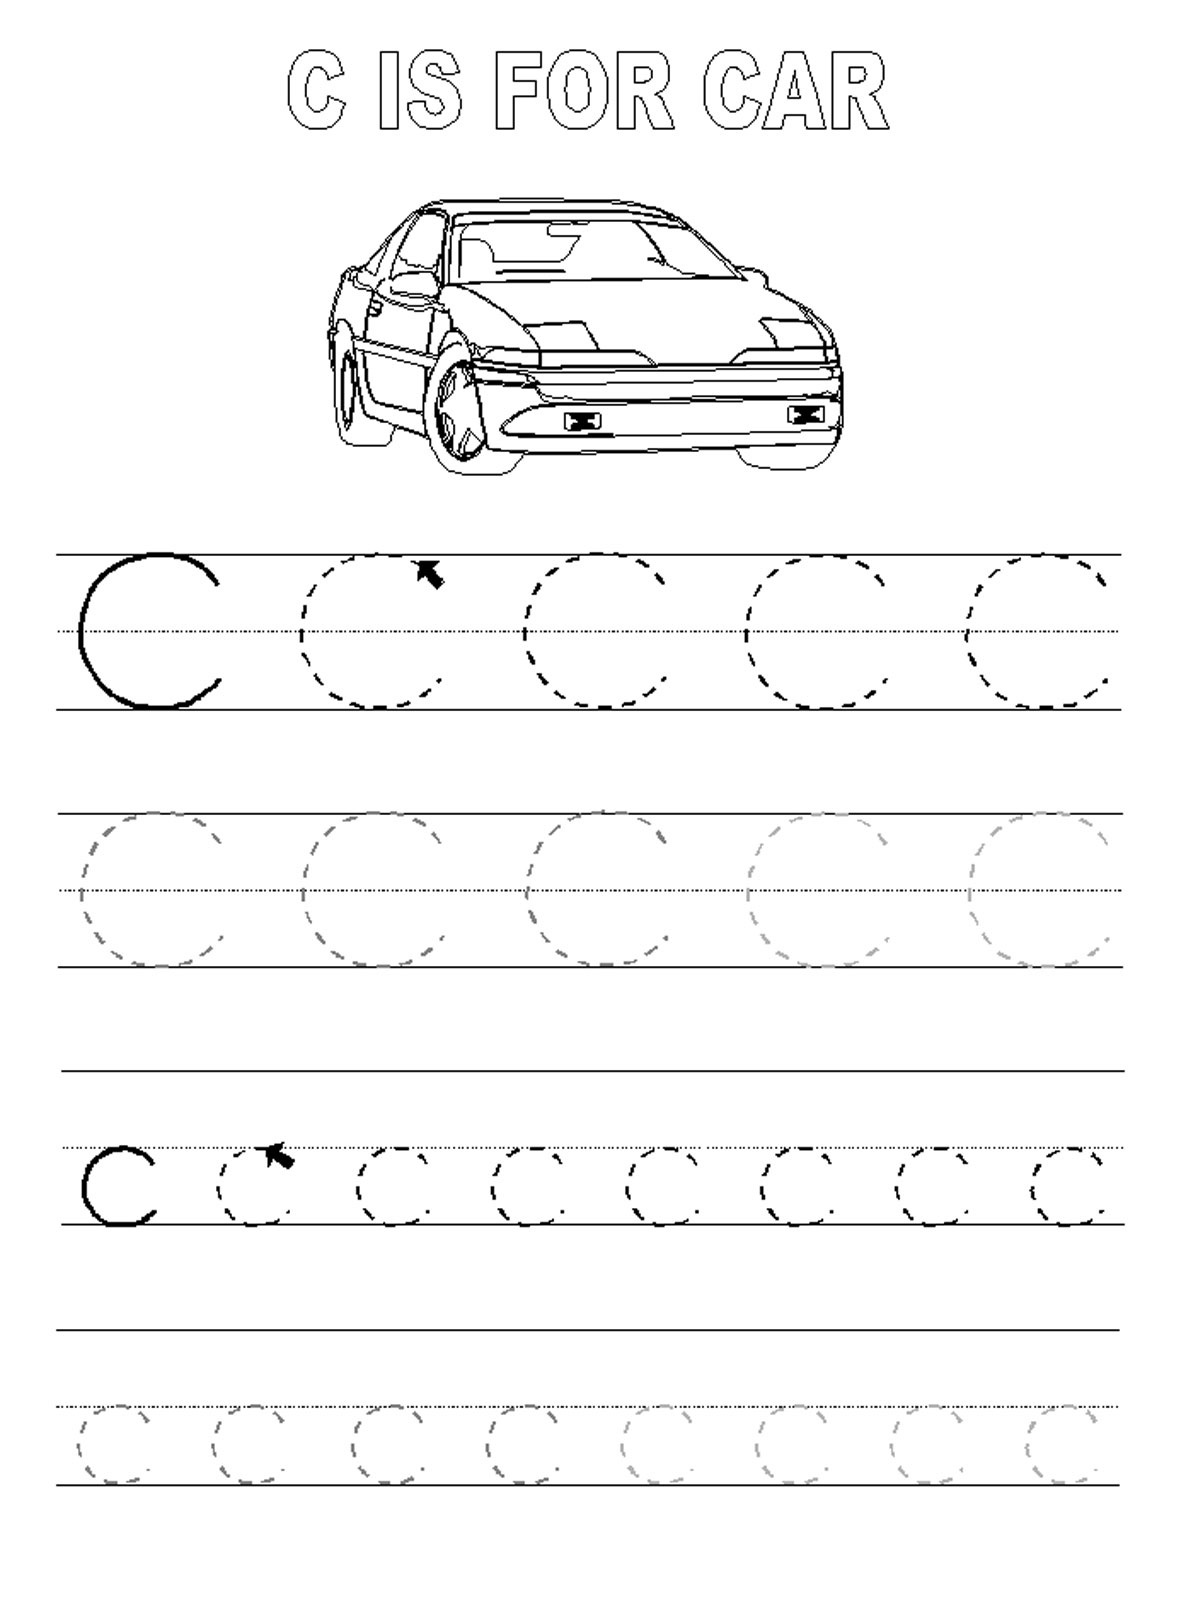 Printable Alphabet Tracing Pages | Activity Shelter